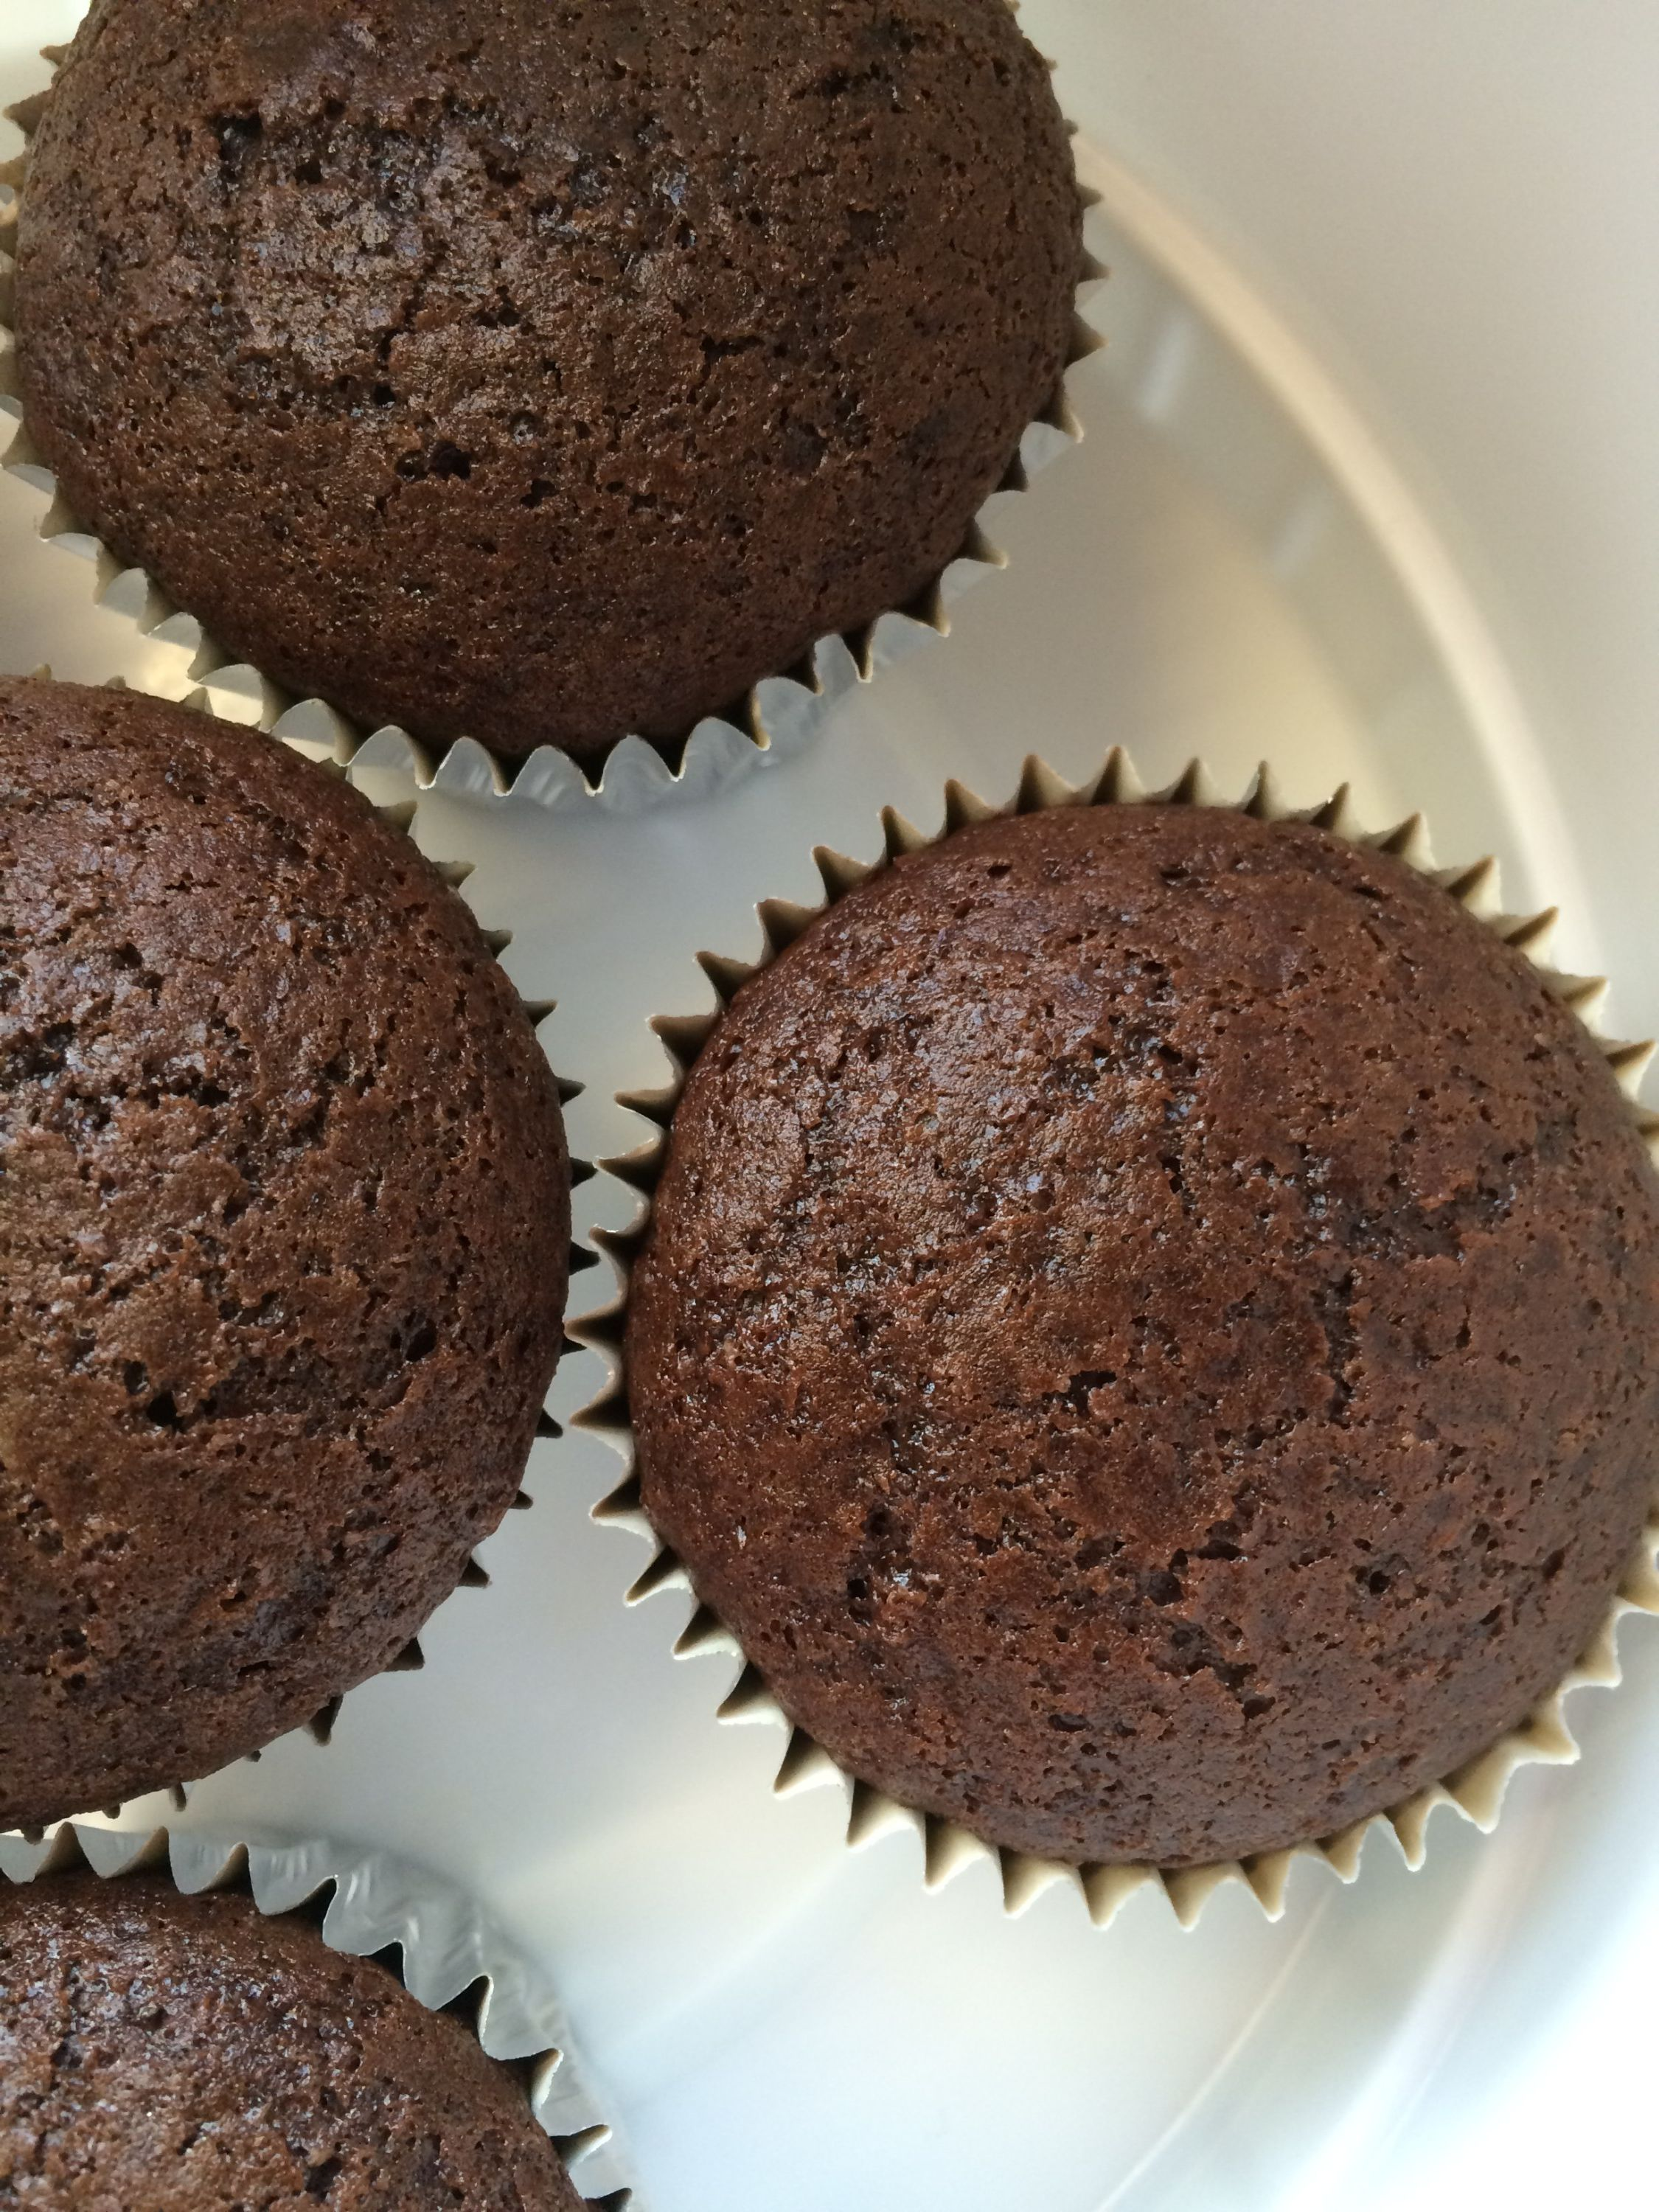 Best Eggless Chocolate Cake Cupcakes That Are Super Easy To Make Moist And Soft Outcom Cupcake Recipes Chocolate Chocolate Cupcakes Easy Eggless Cake Recipe